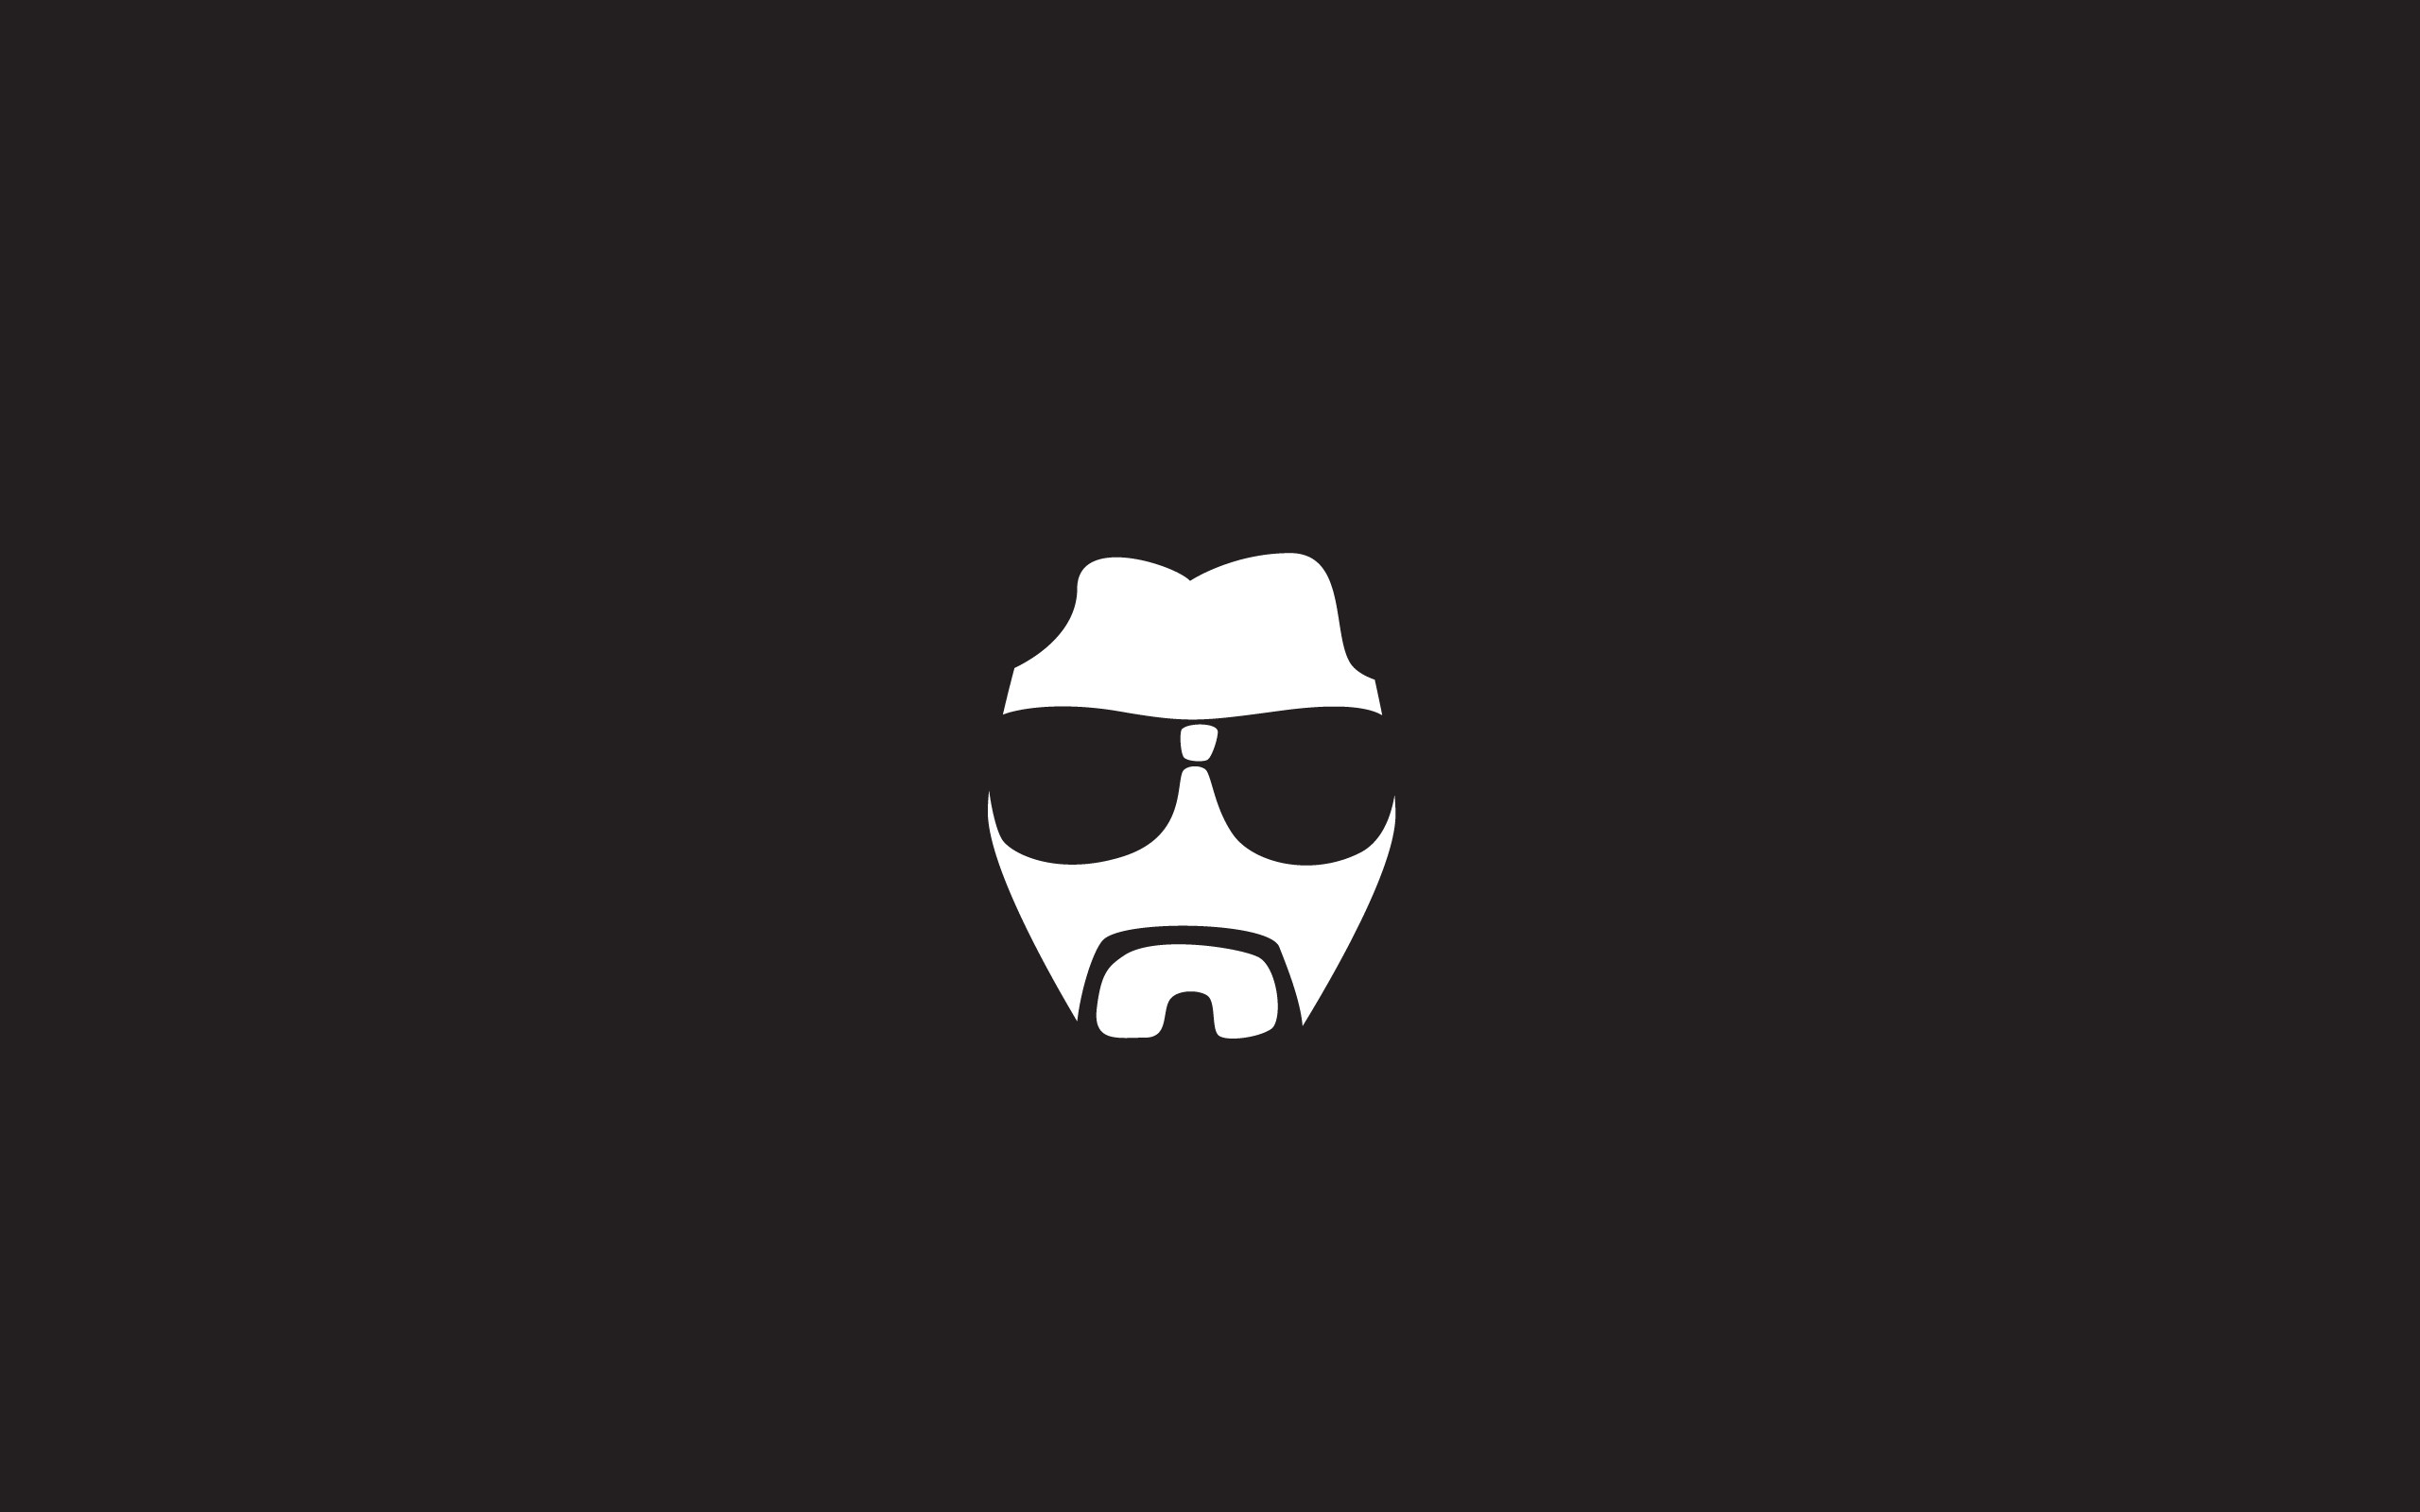 cool-simple-and-minimalist-desktop-wallpaper -the_dude_the_big_lebowski-cooked